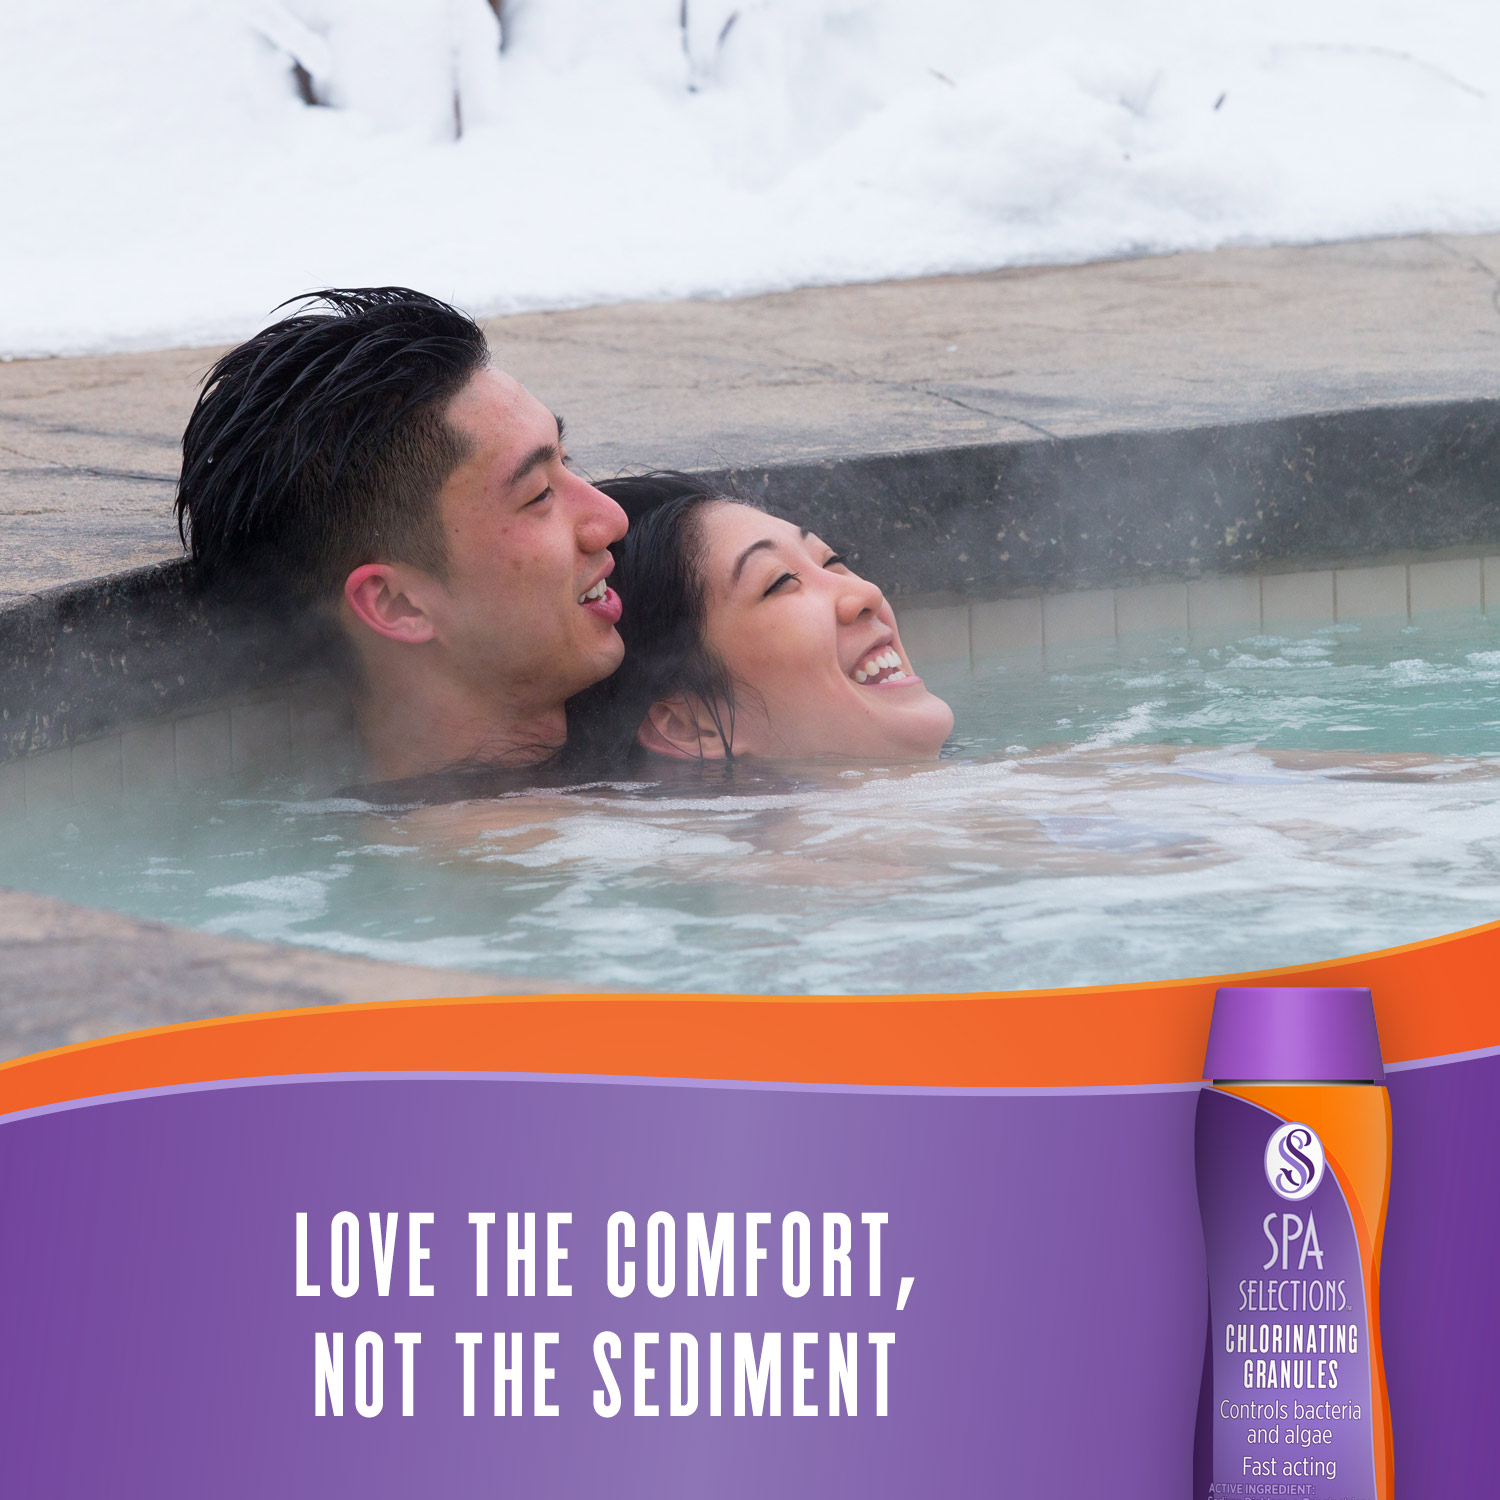 Couple enjoying an outdoor hot tub. Spa Selections chlorinating granules: love the comfort, not the sediment.